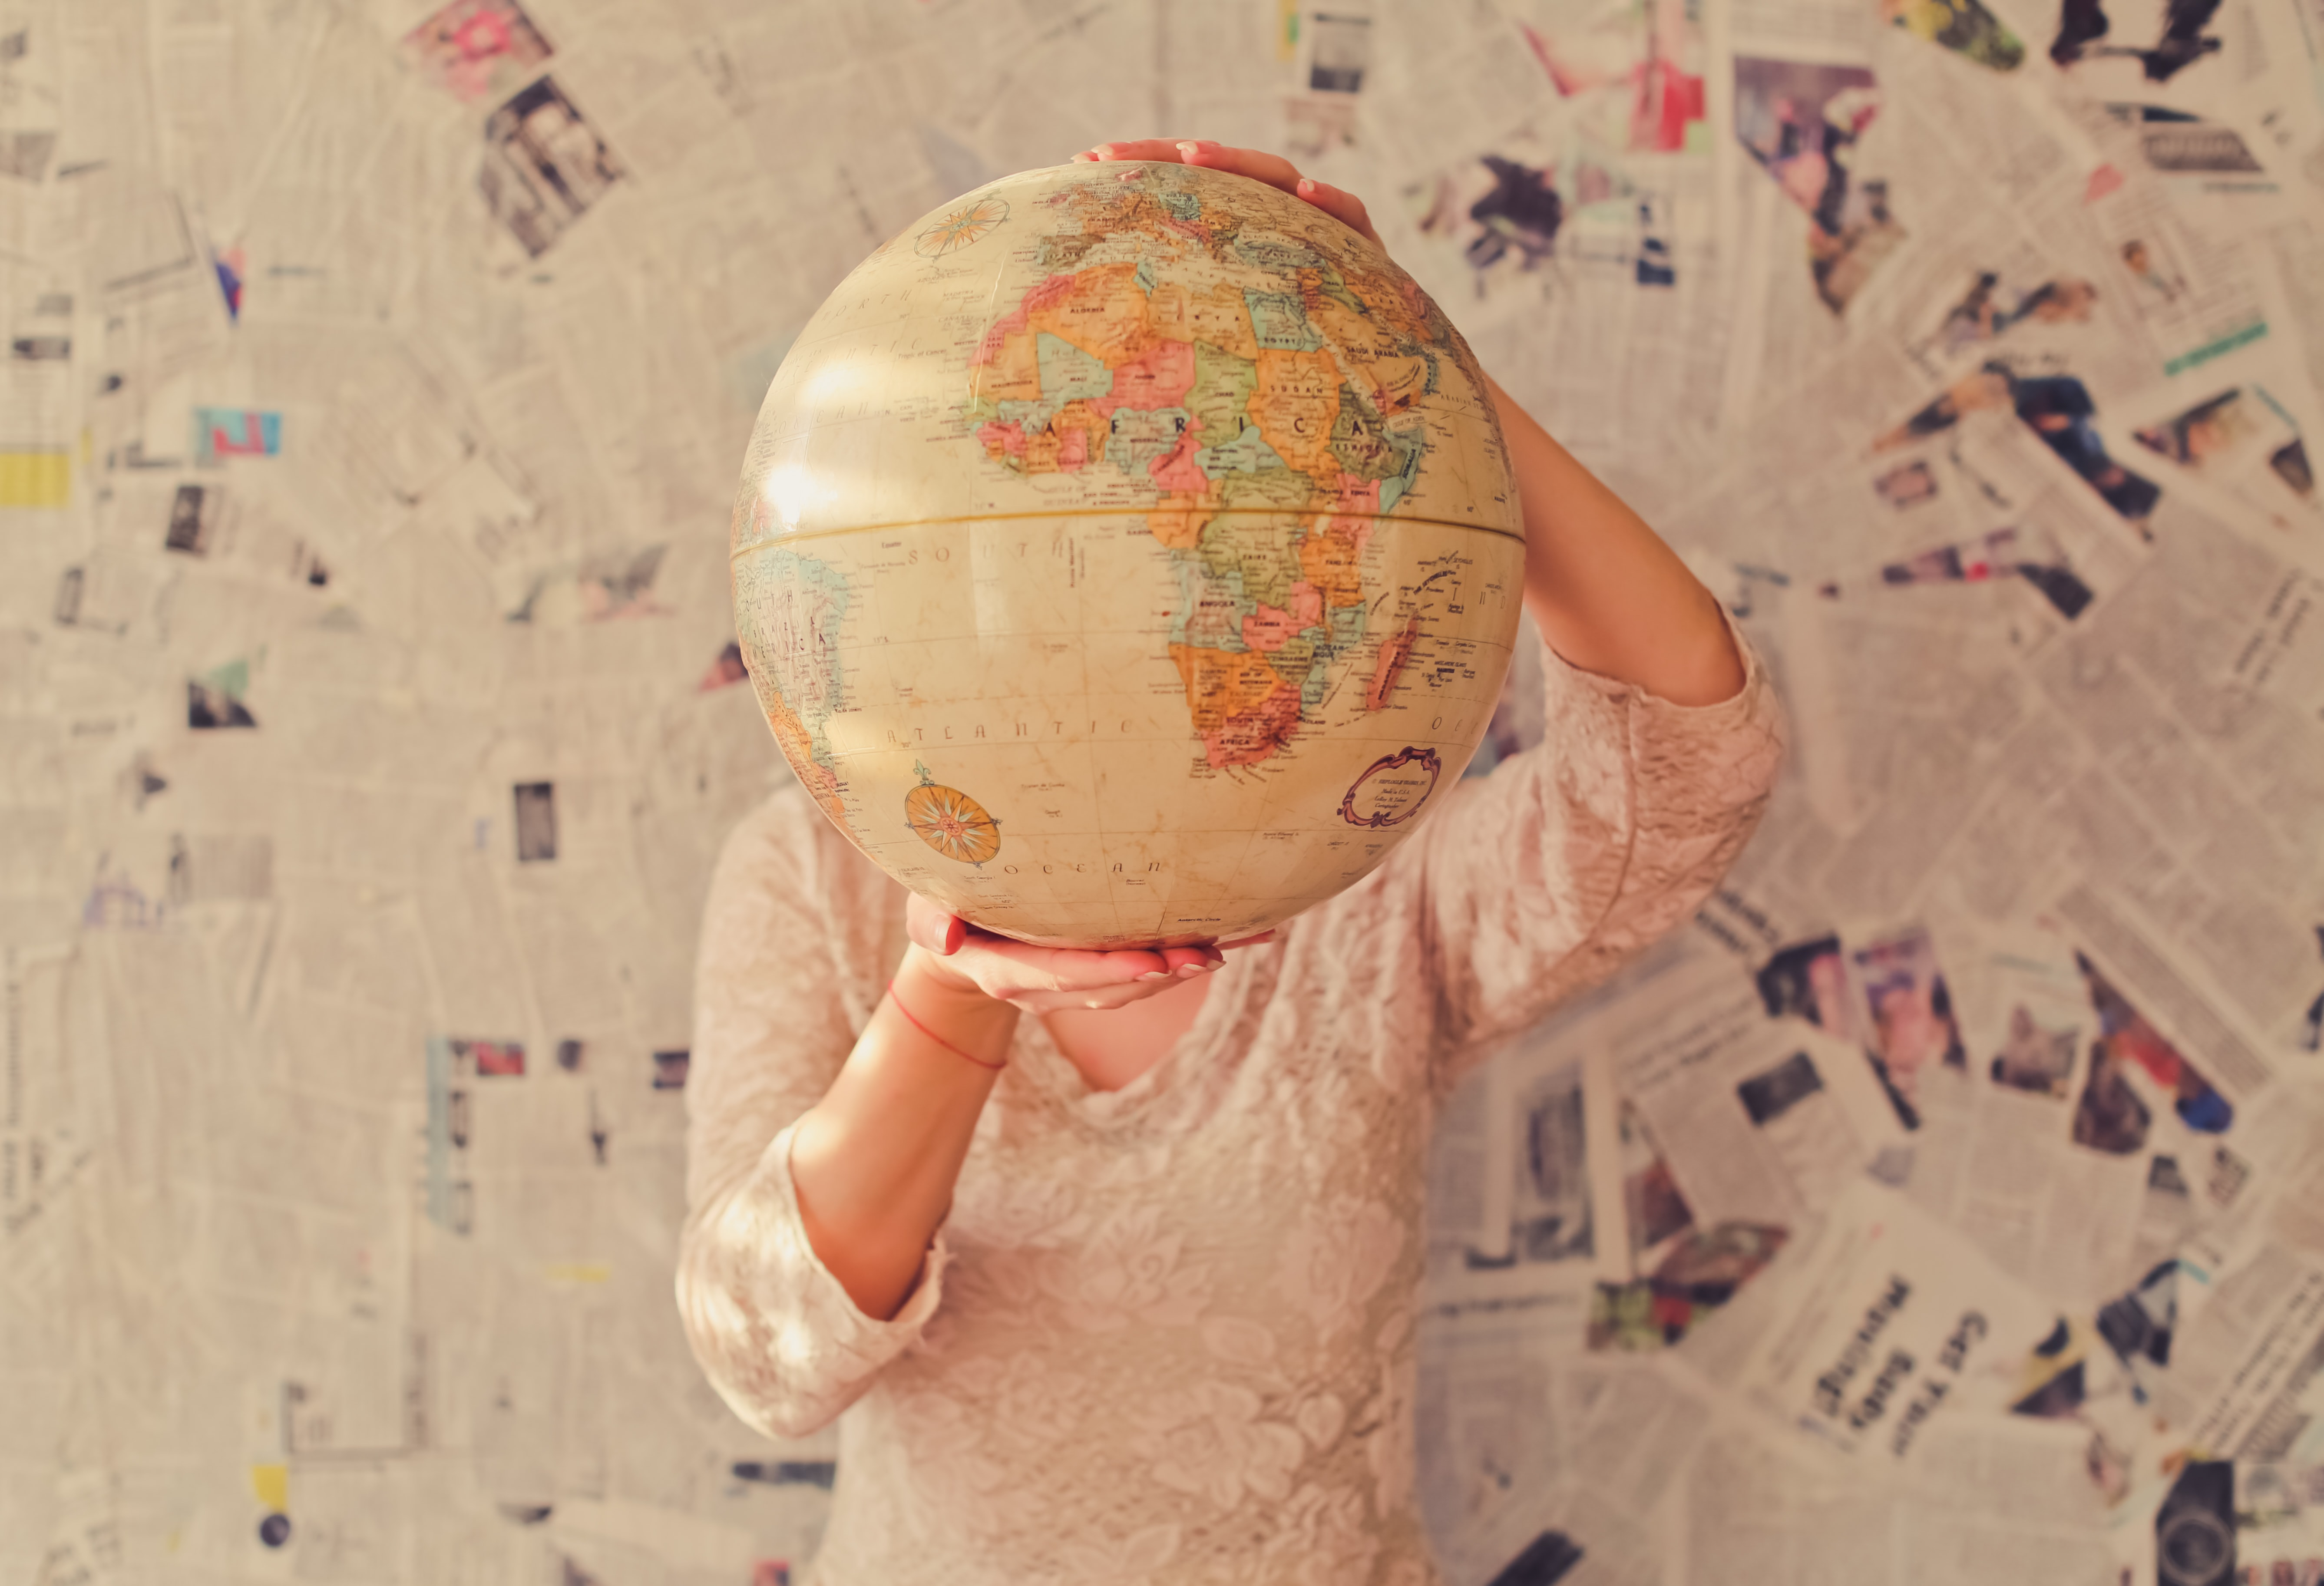 Our World stories